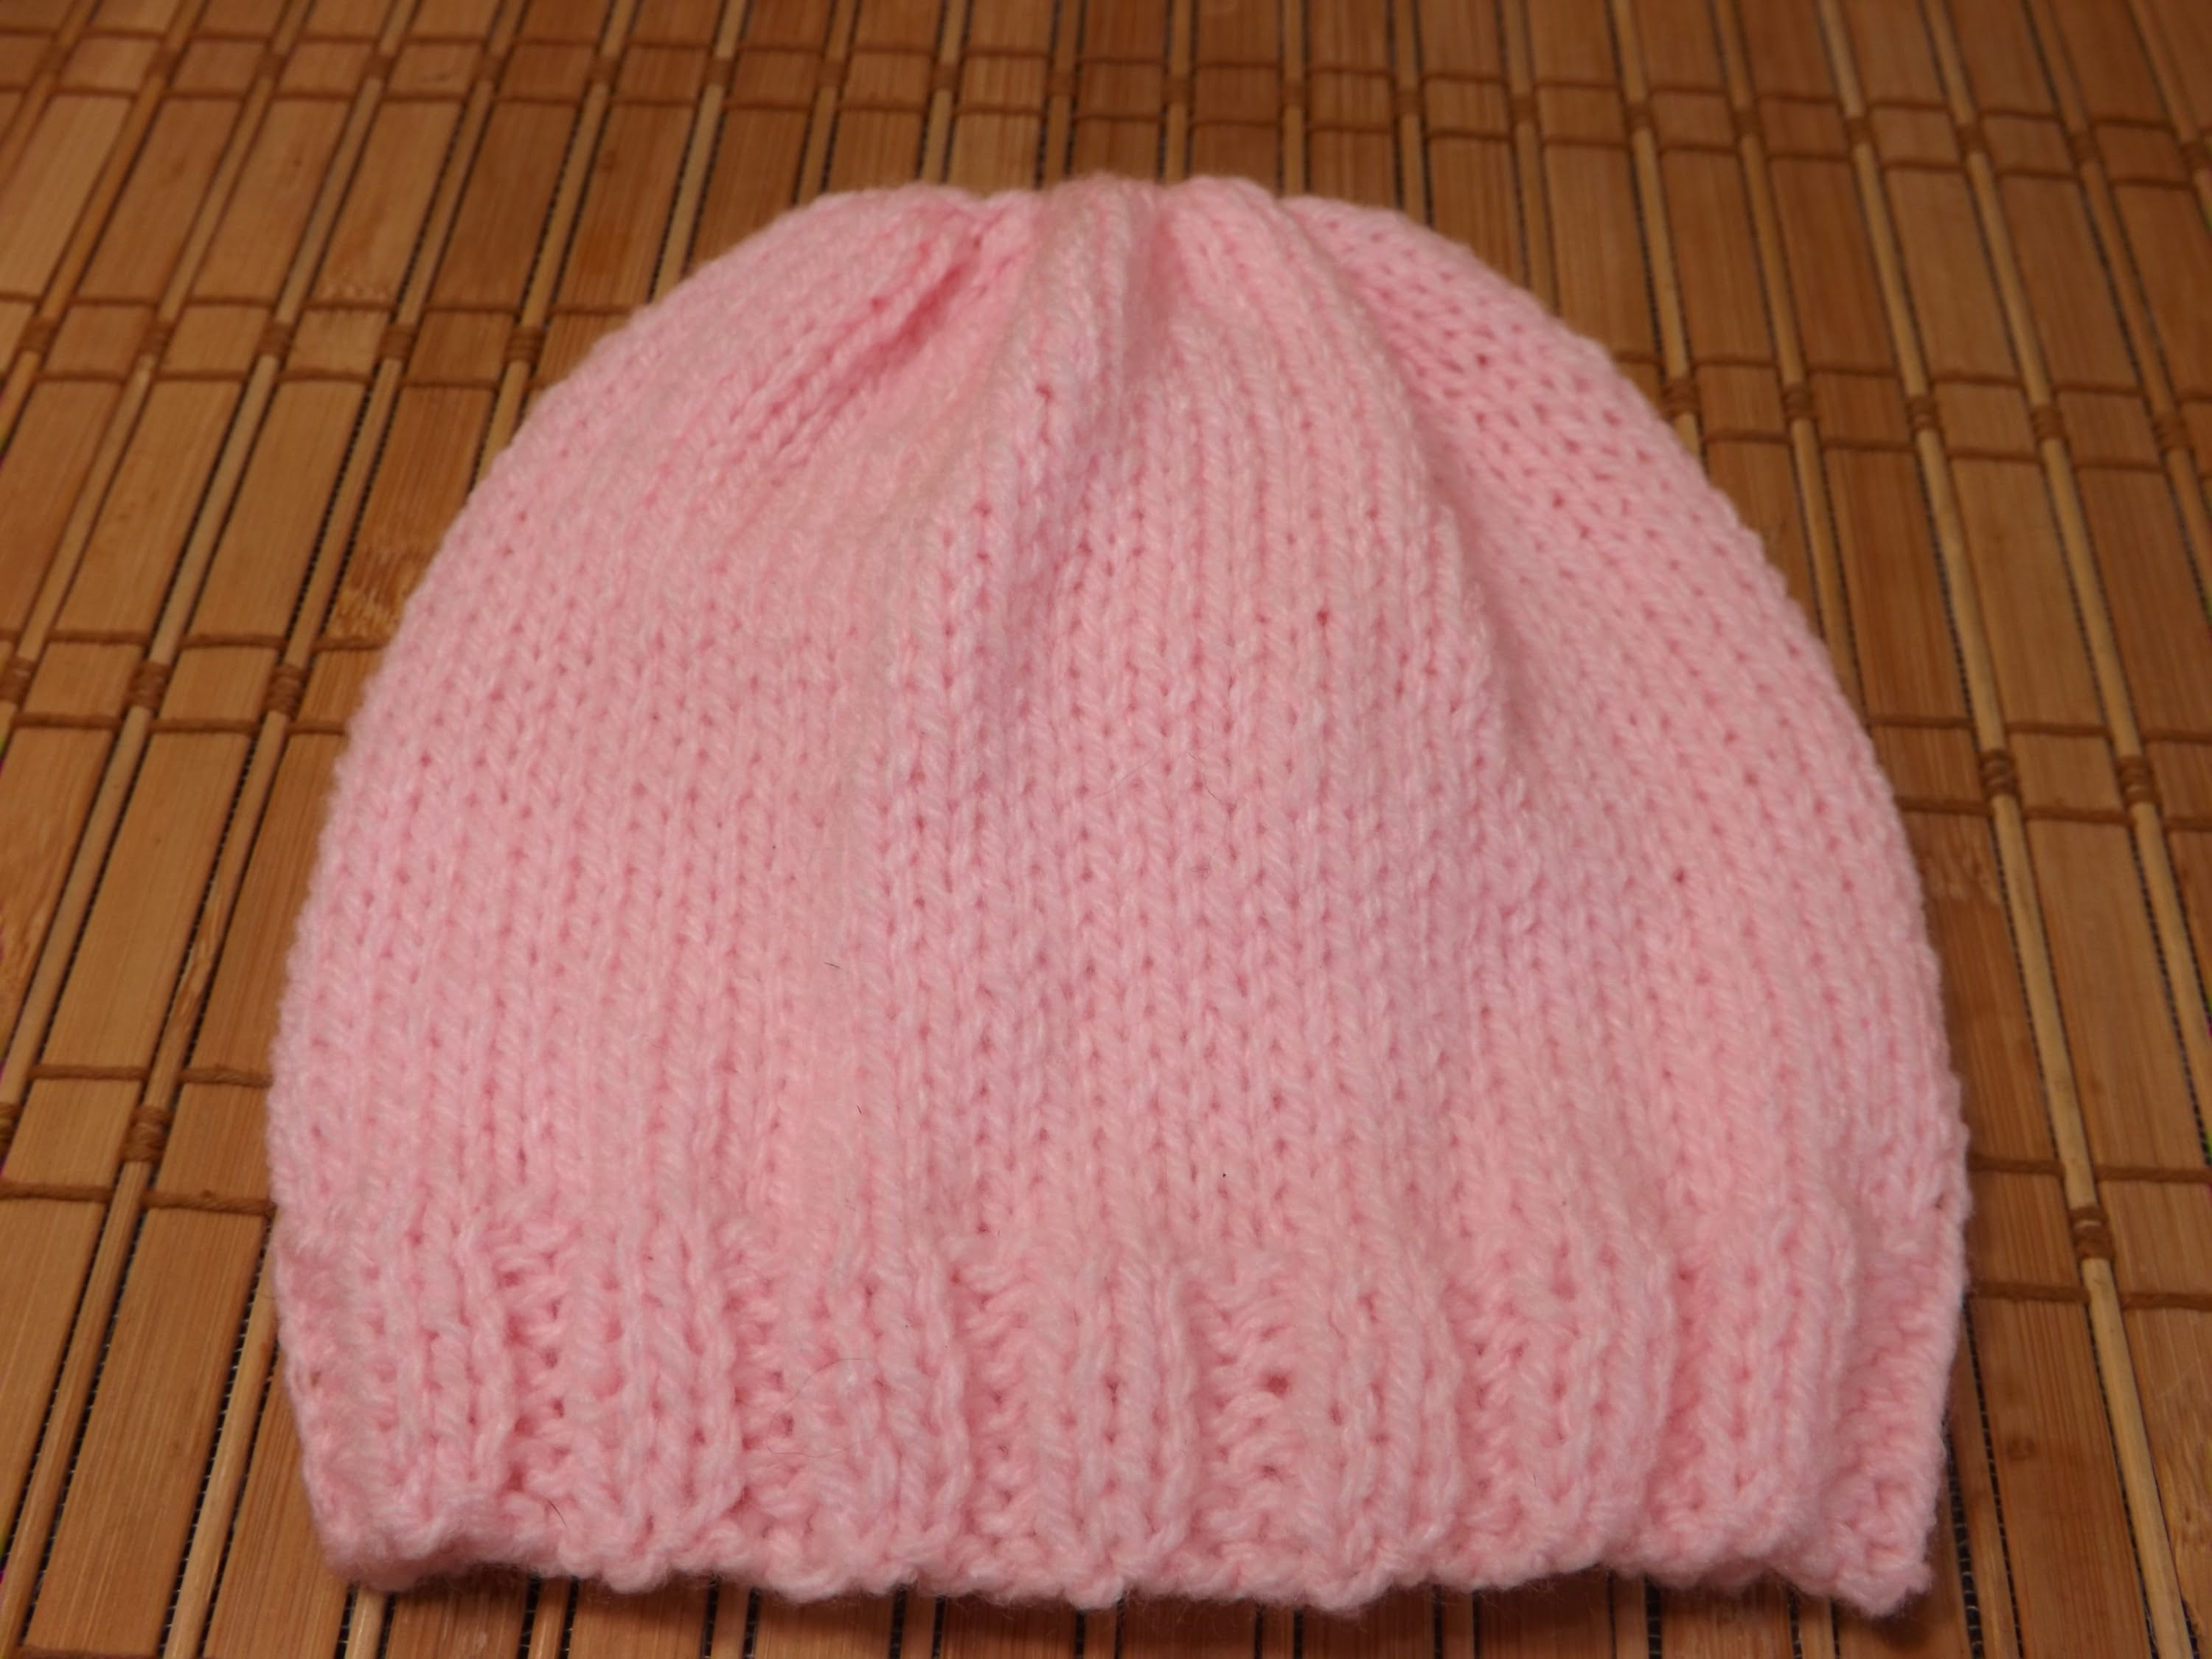 knitted baby hats how to knit a newborn babyu0027s hat for beginners - youtube hlgiqtb